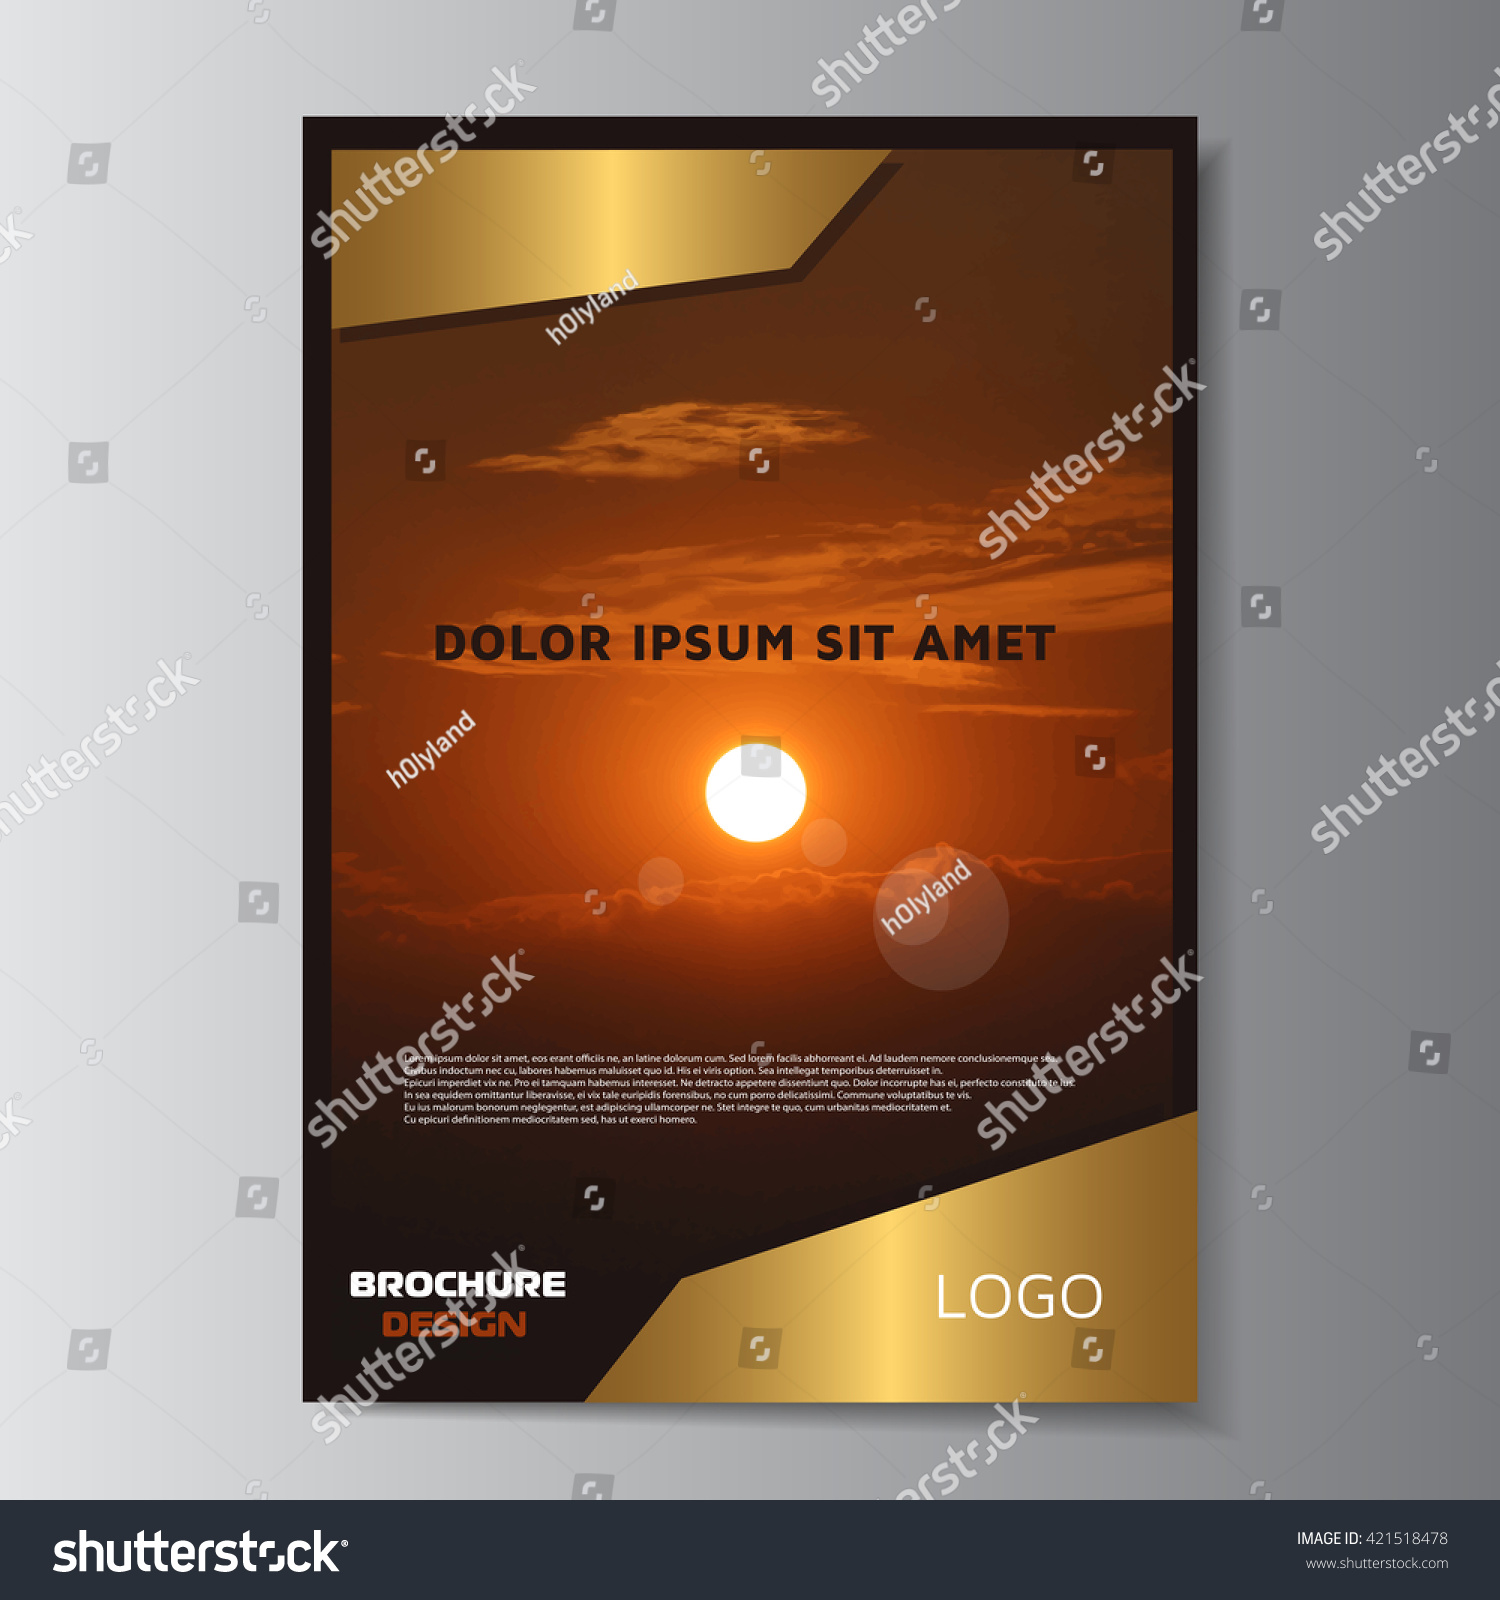 golden brochure design leaflet empty layout printable flyer save to a lightbox